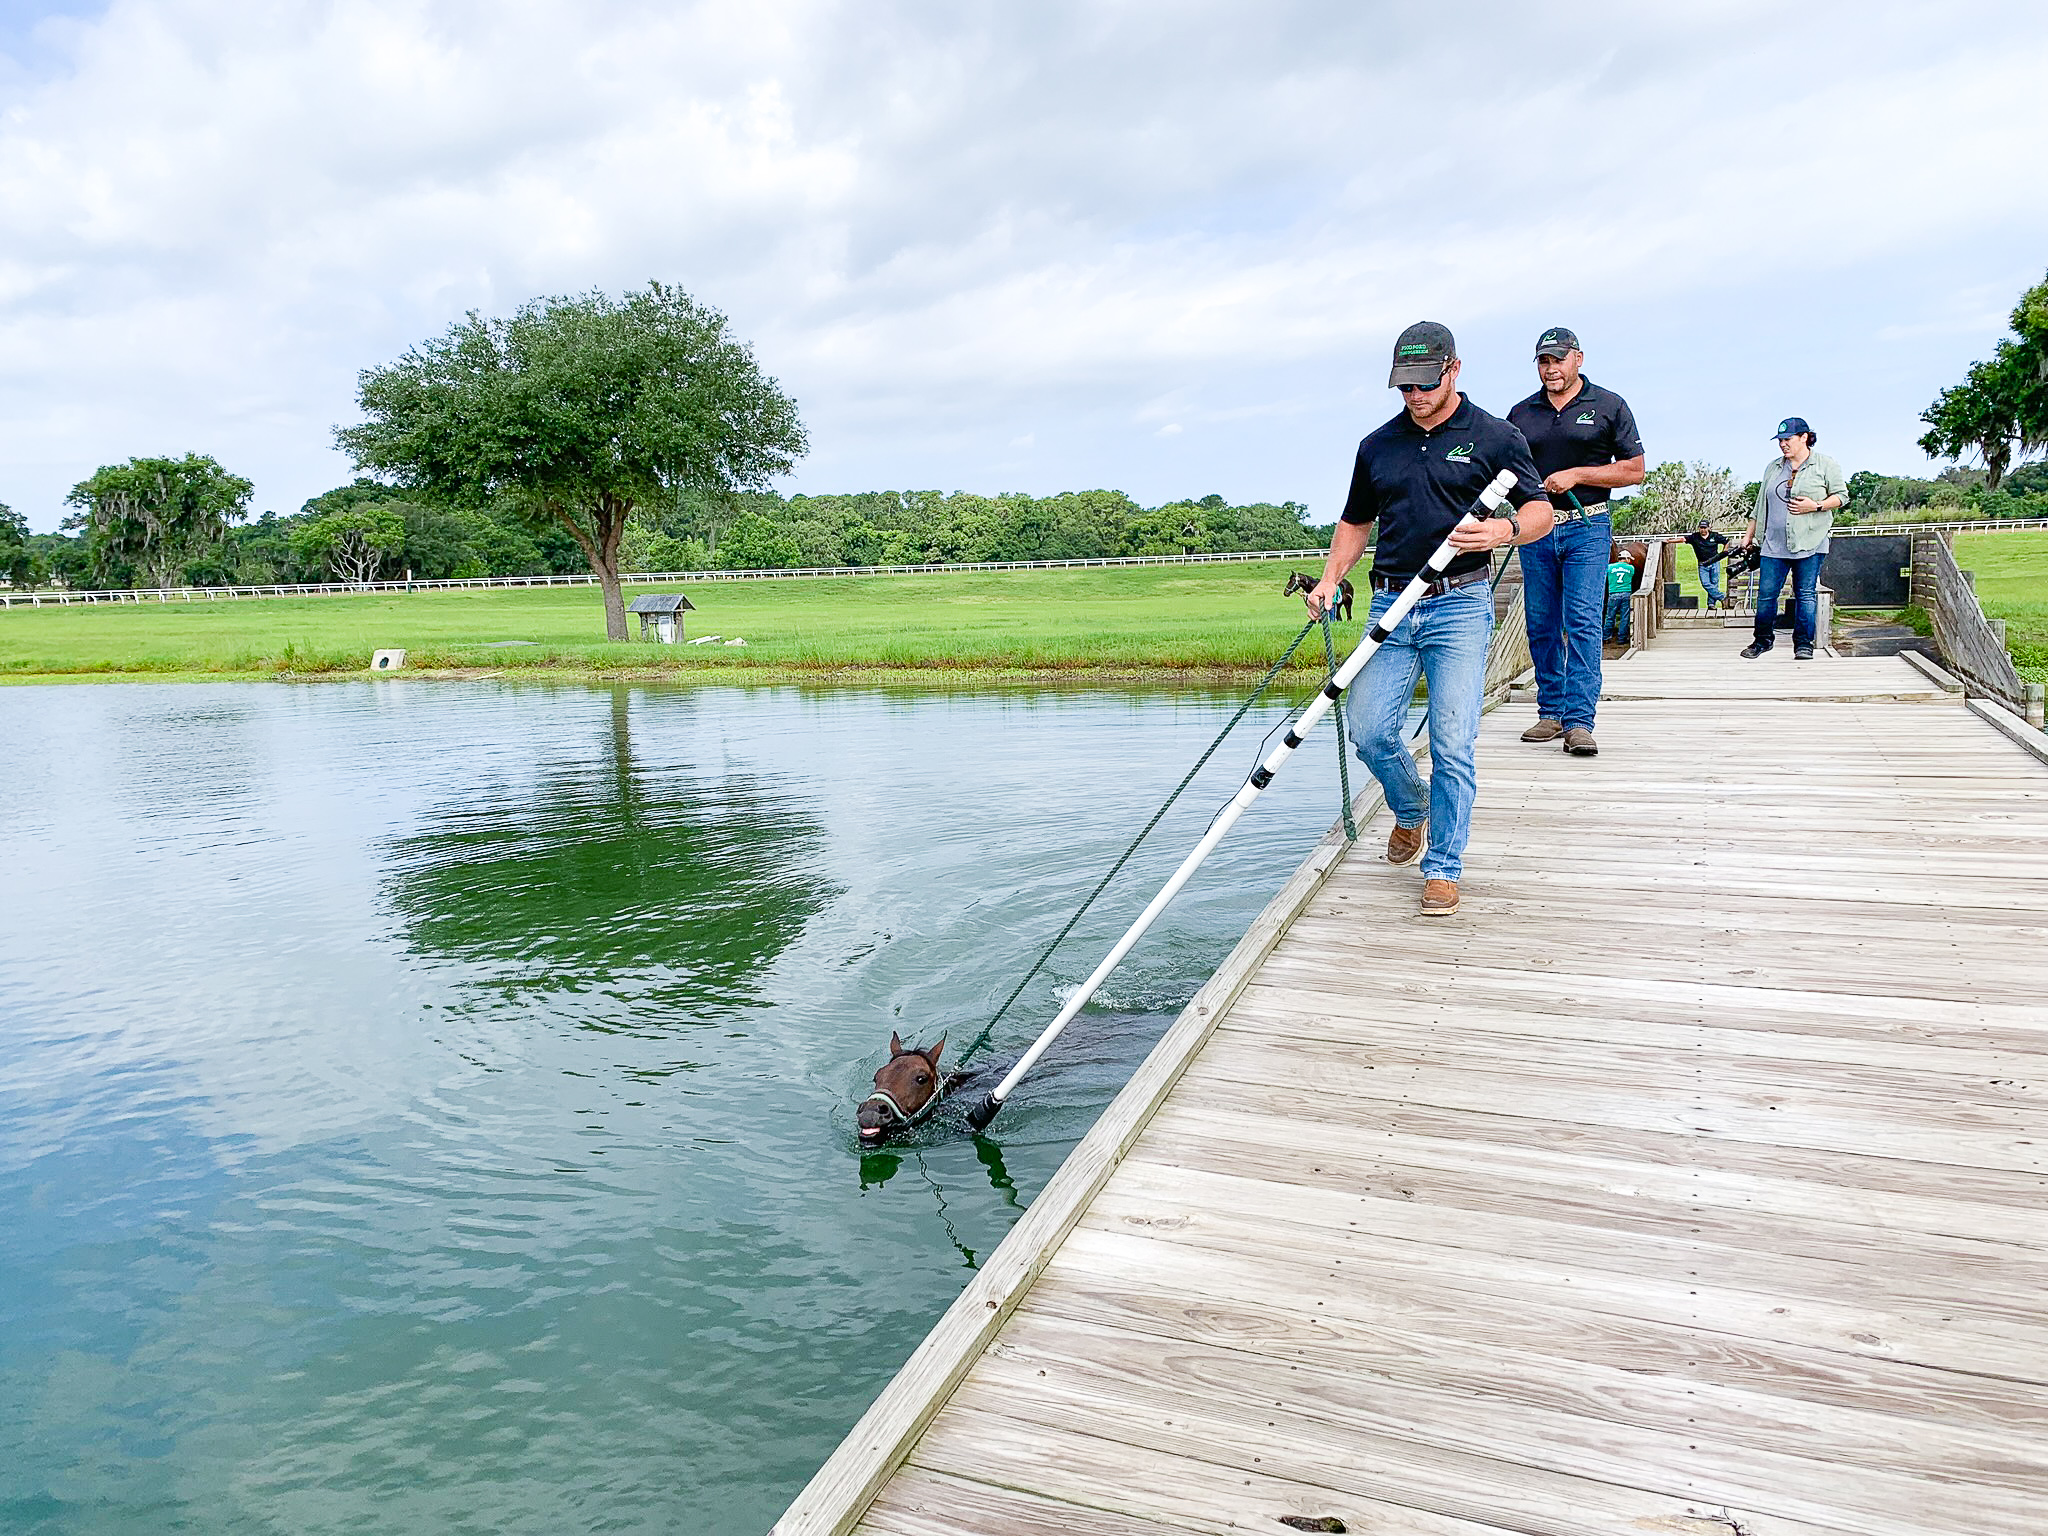 Swim Dock - The swim dock was created from scratch and had one design element in mind: safety. Swimming is a tool used by the training center to get horses fit and increase lung capacity.